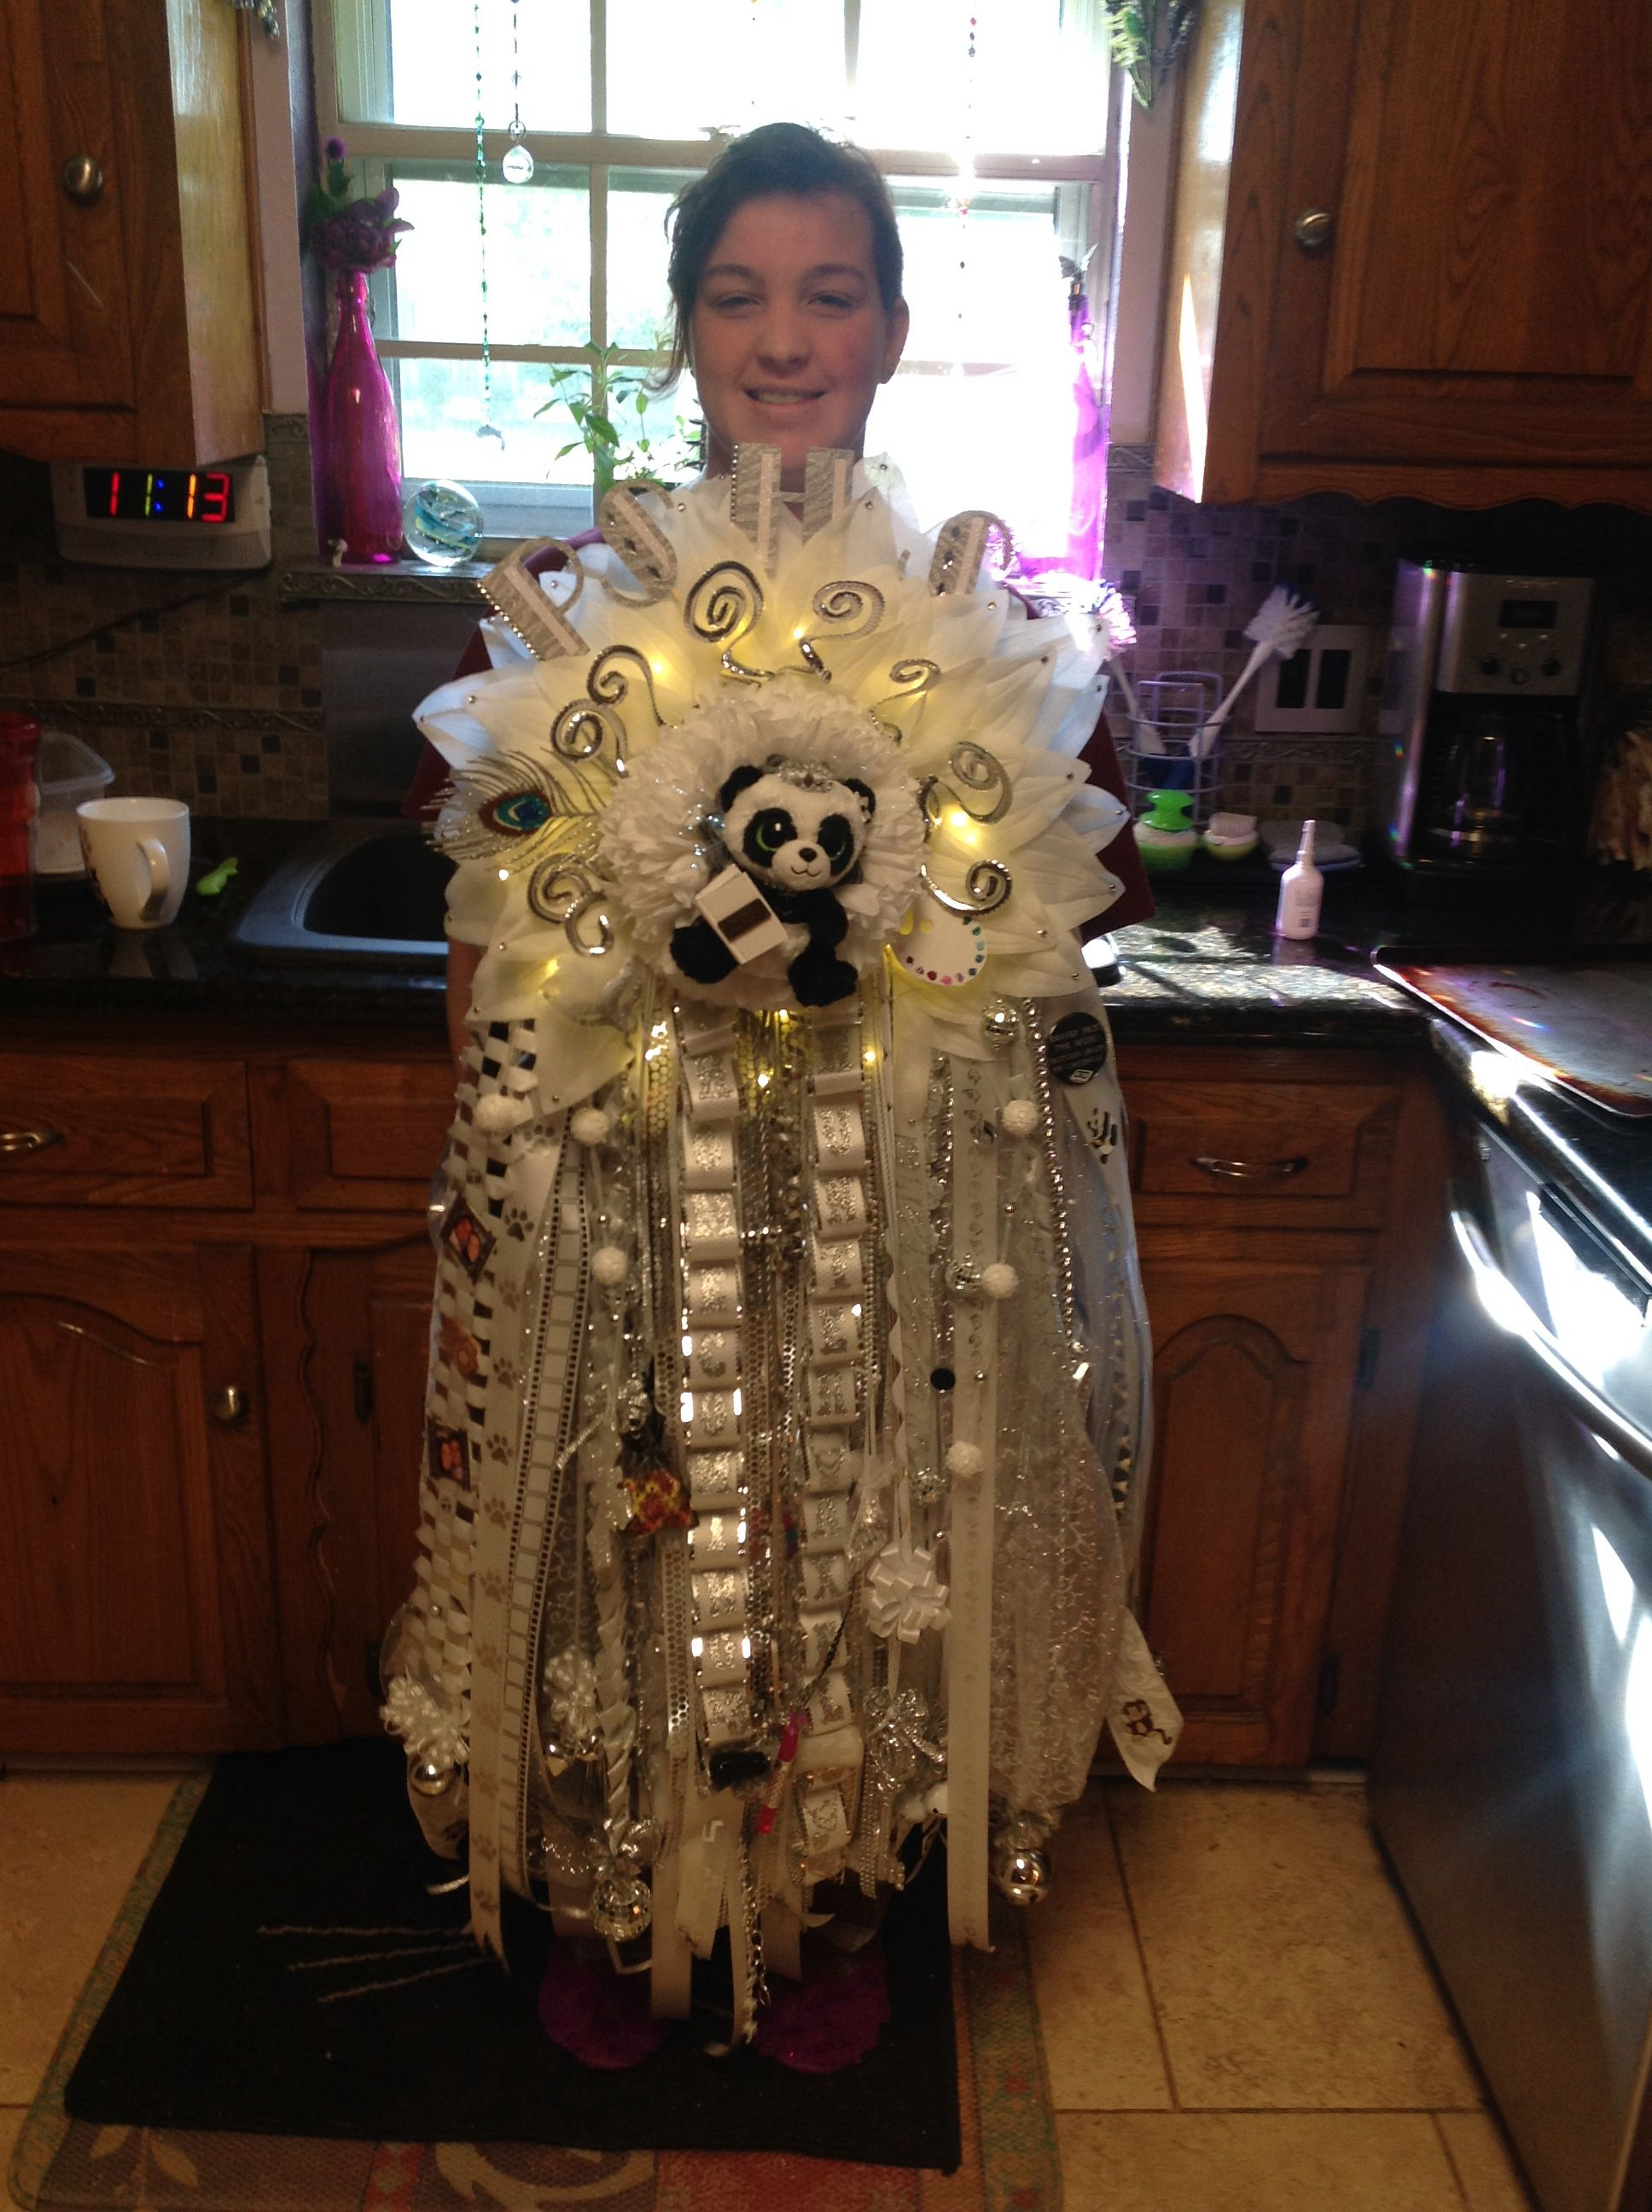 Homecoming Mum Plano Texas Wow They Sure Are Ger Now Days I Like More Understated But Wver